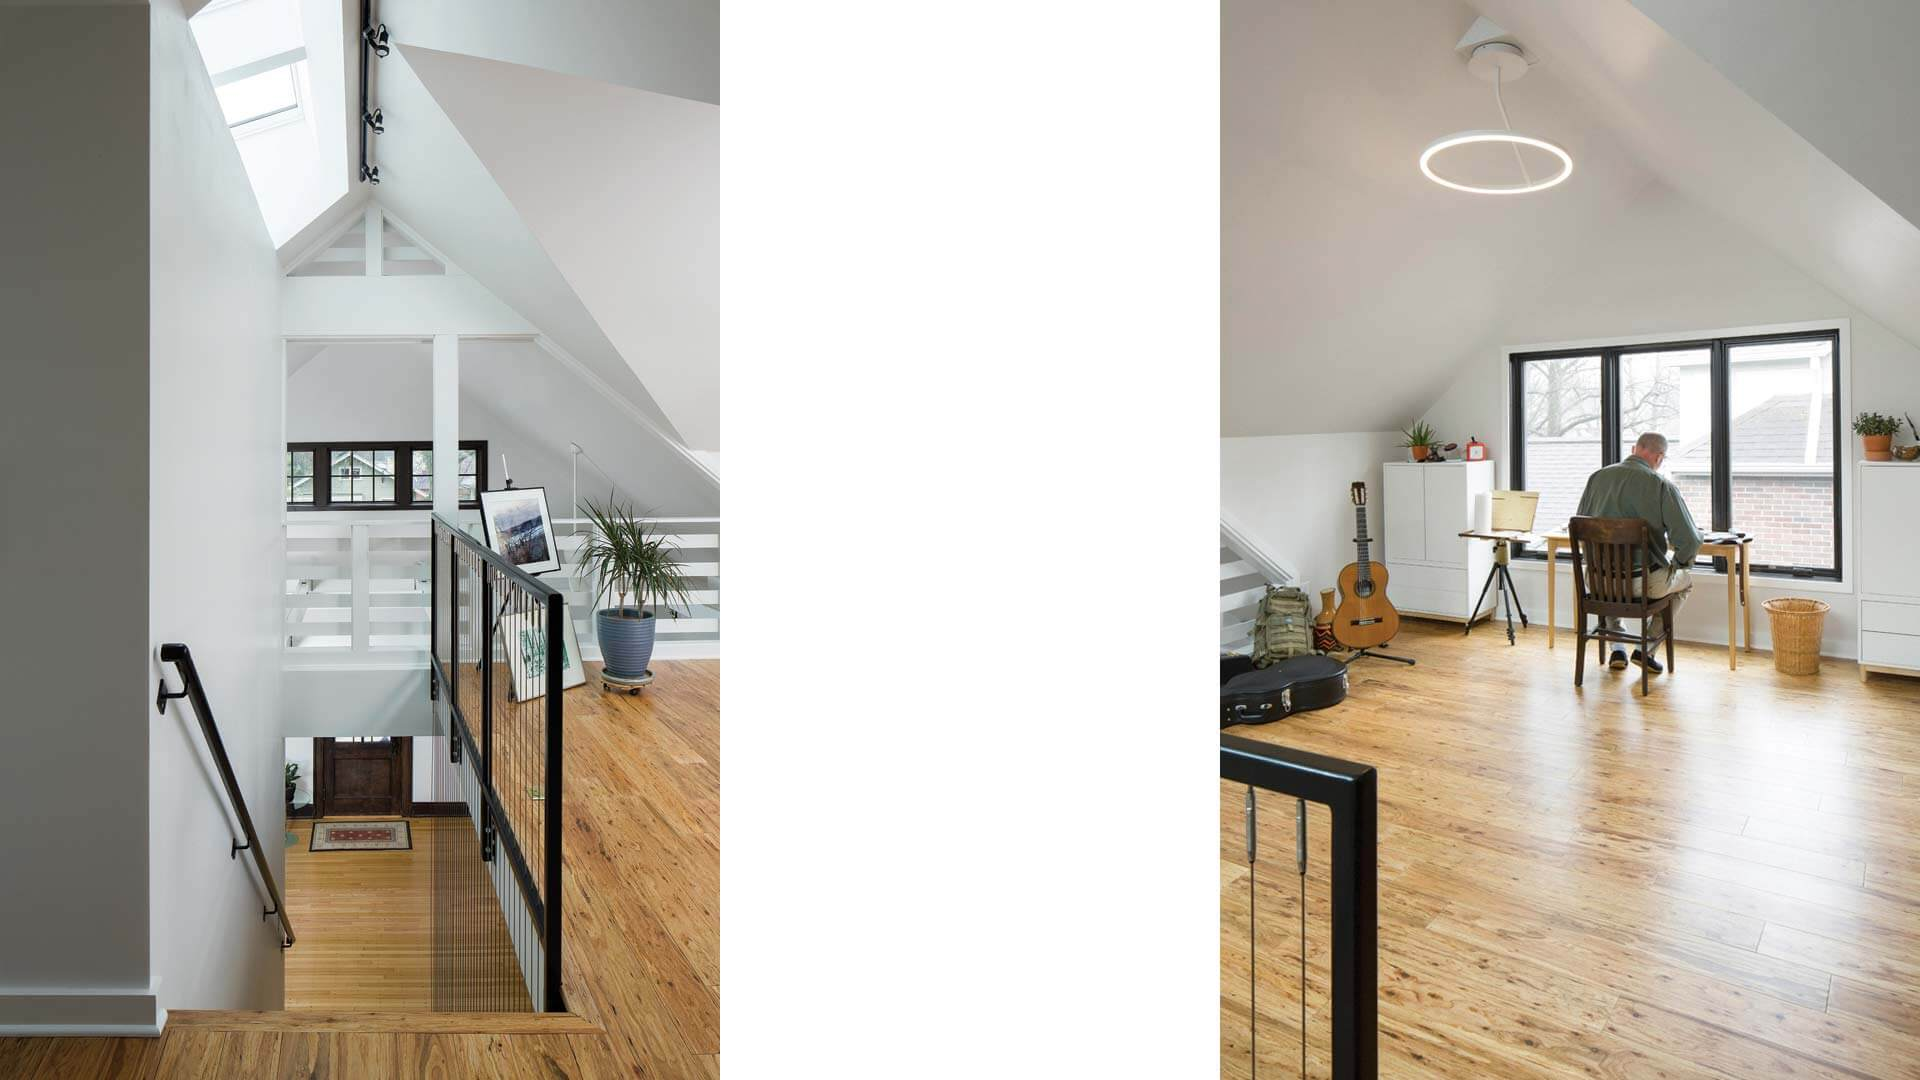 Loft Music Room sits adjacent to architectural stair under skylight and overlooks double-height living space - Broad Ripple Modern Craftsman - Carrollton Avenue - Indianapolis, Indiana, Christopher Short, Architect, HAUS Architecture + WERK   Building Modern - Paul Reynolds